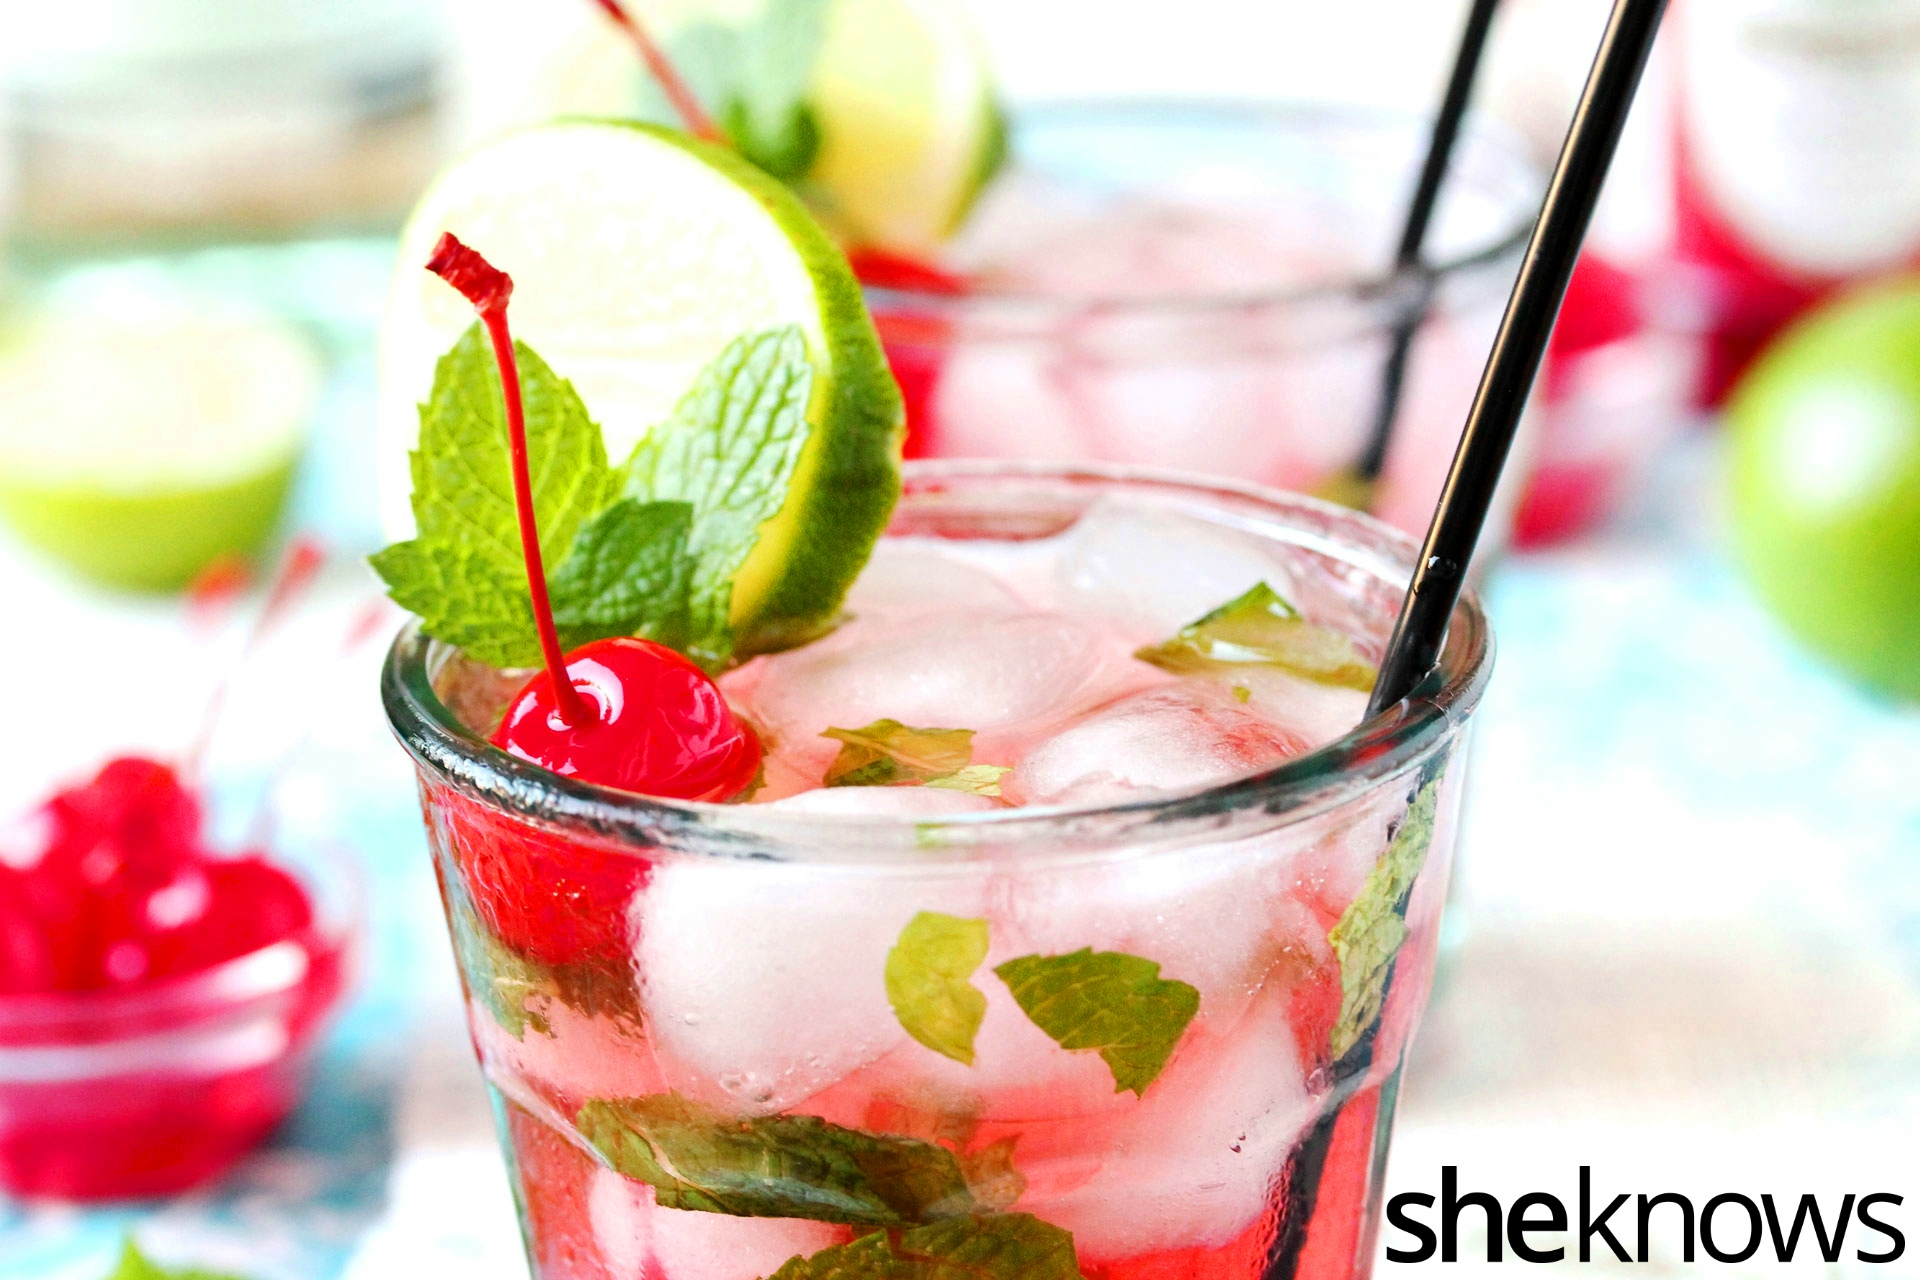 Your childhood Shirley Temple, all grown up mojito-style